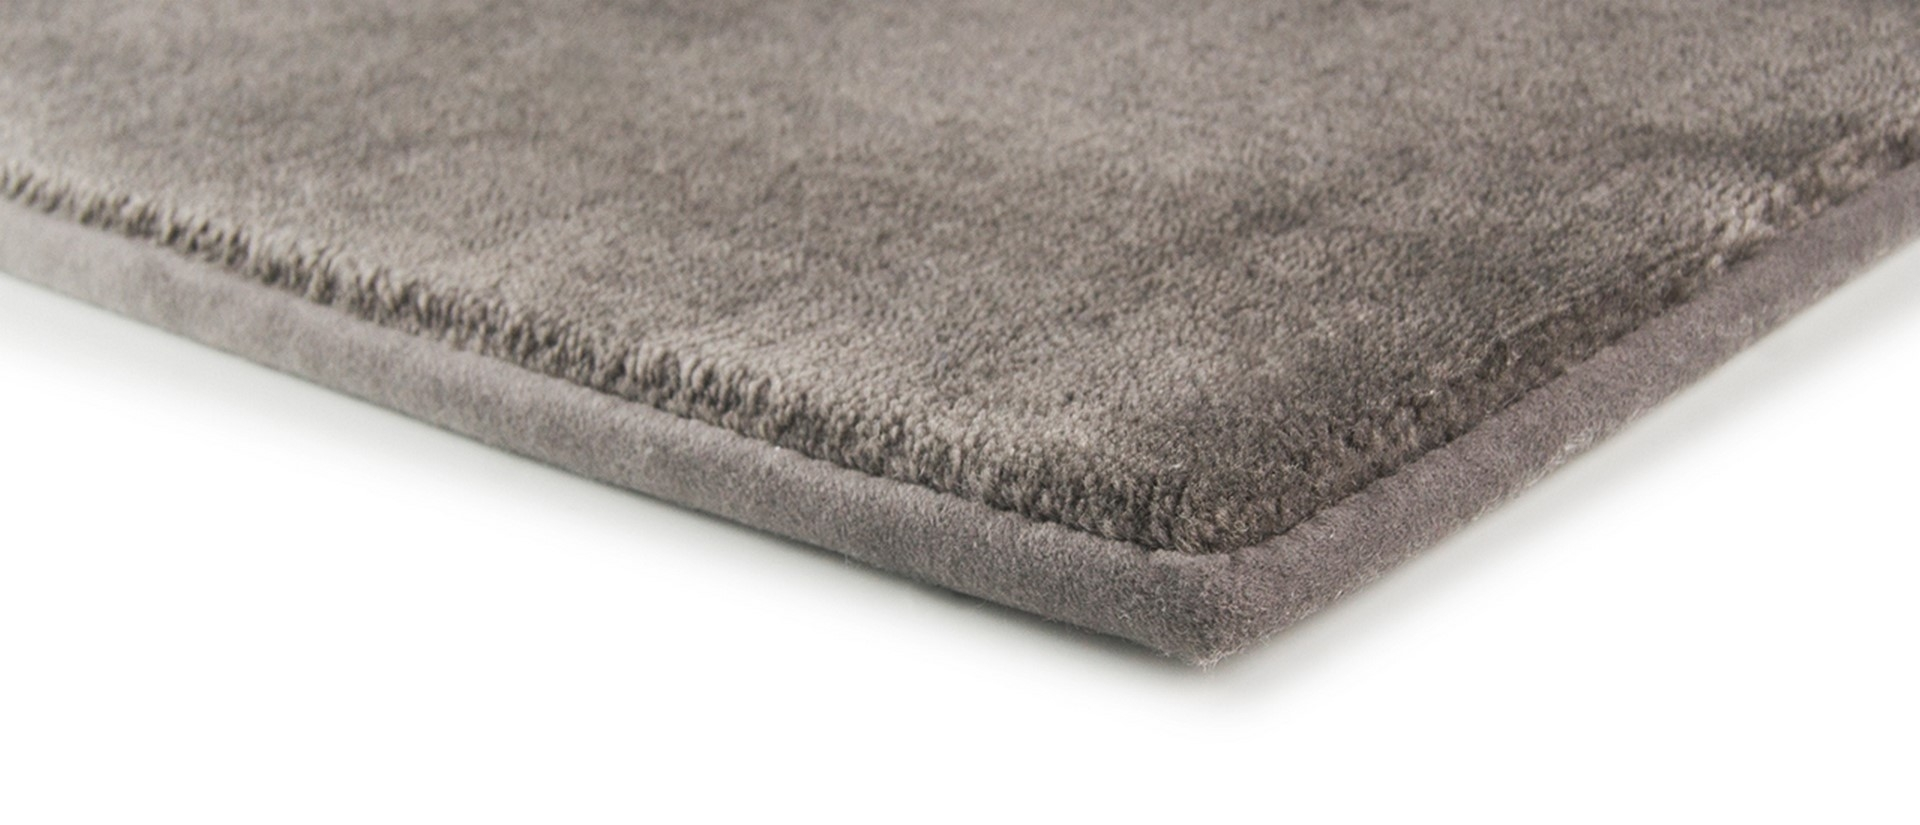 Large Rugs Itc For Large Wool Rugs (Image 5 of 15)